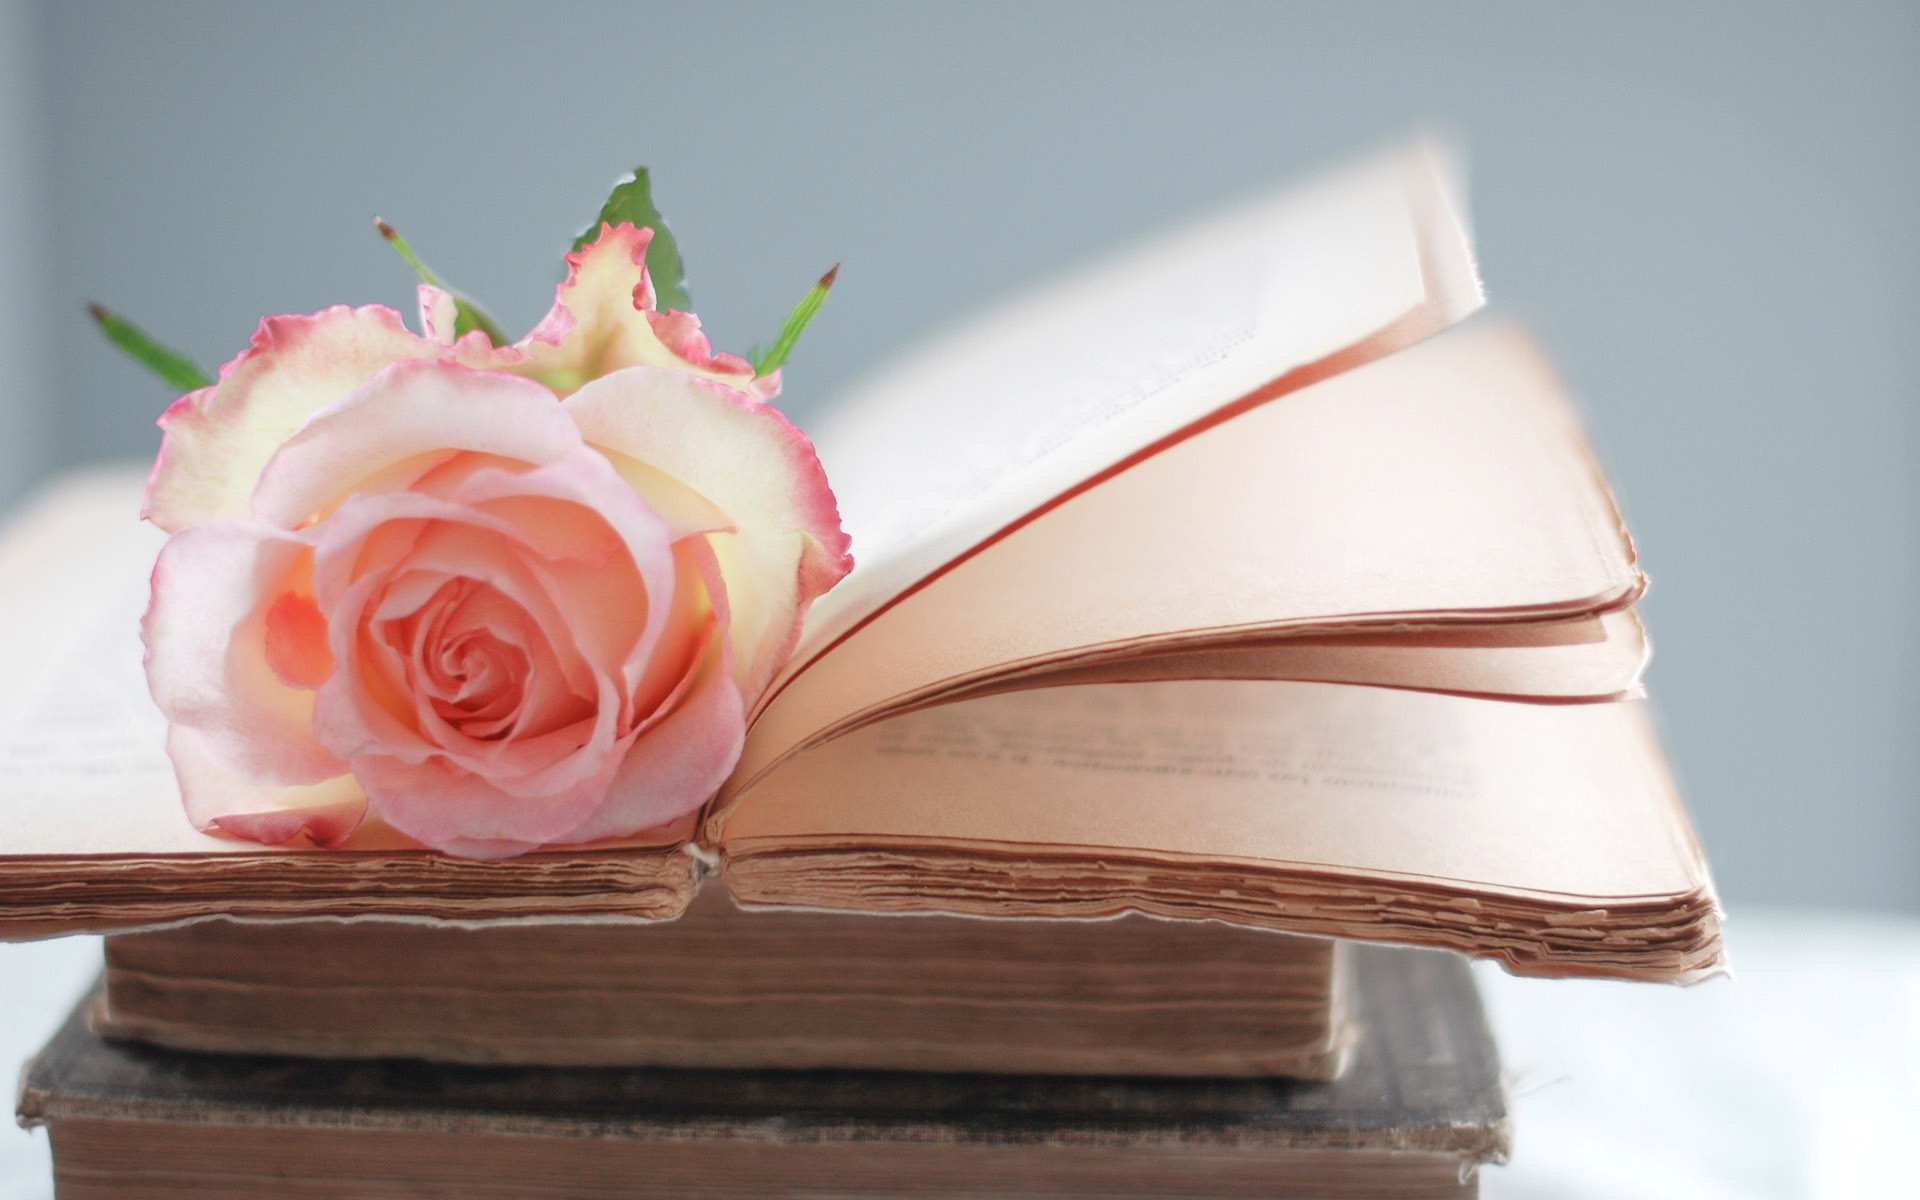 Rose on A Book HD Wallpaper